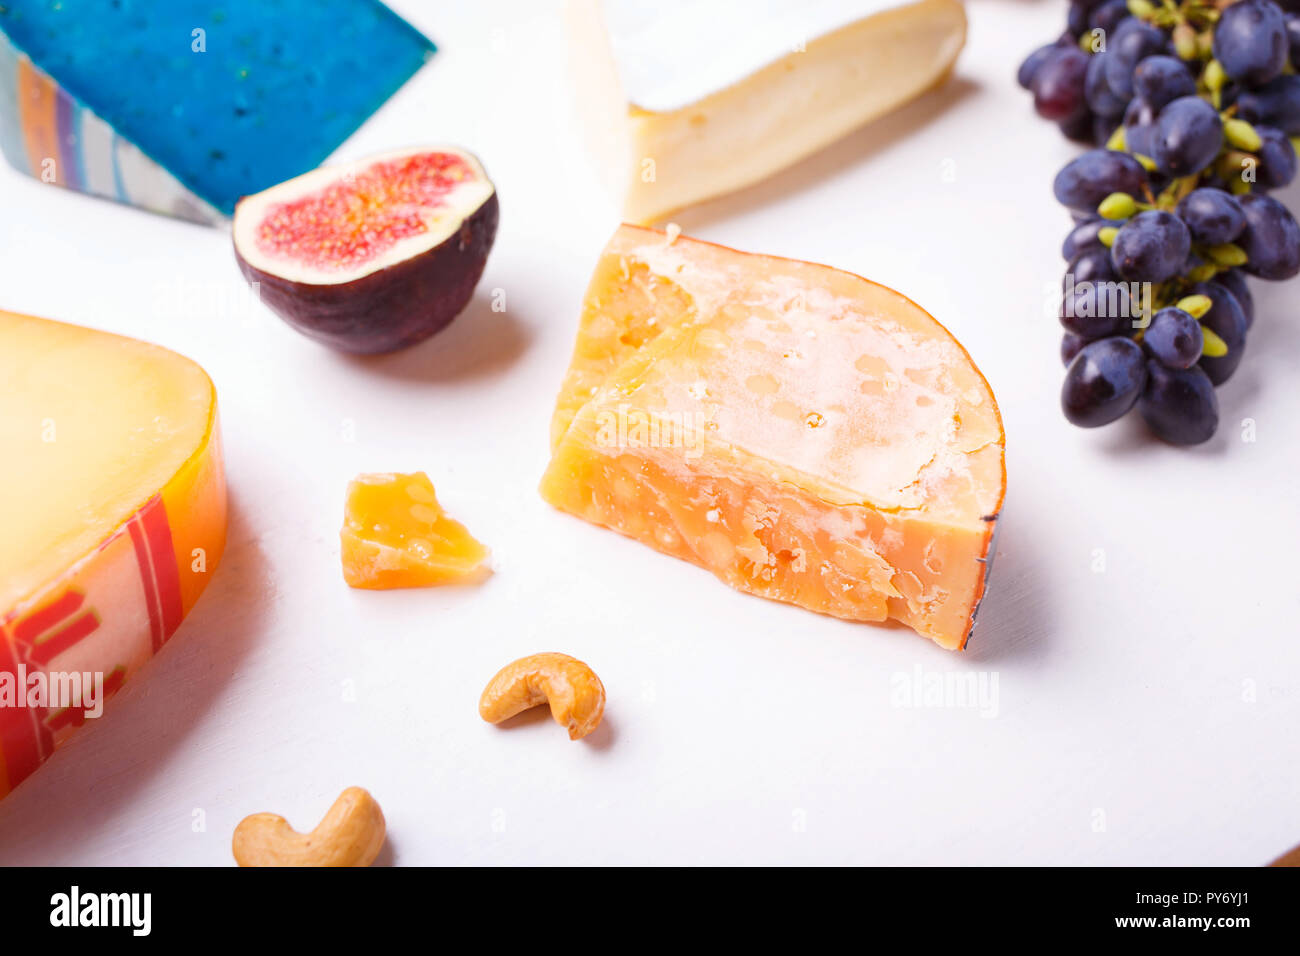 Variety of different cheese with nuts and grapes on the table. Top view image of soft and hard cheeses Stock Photo